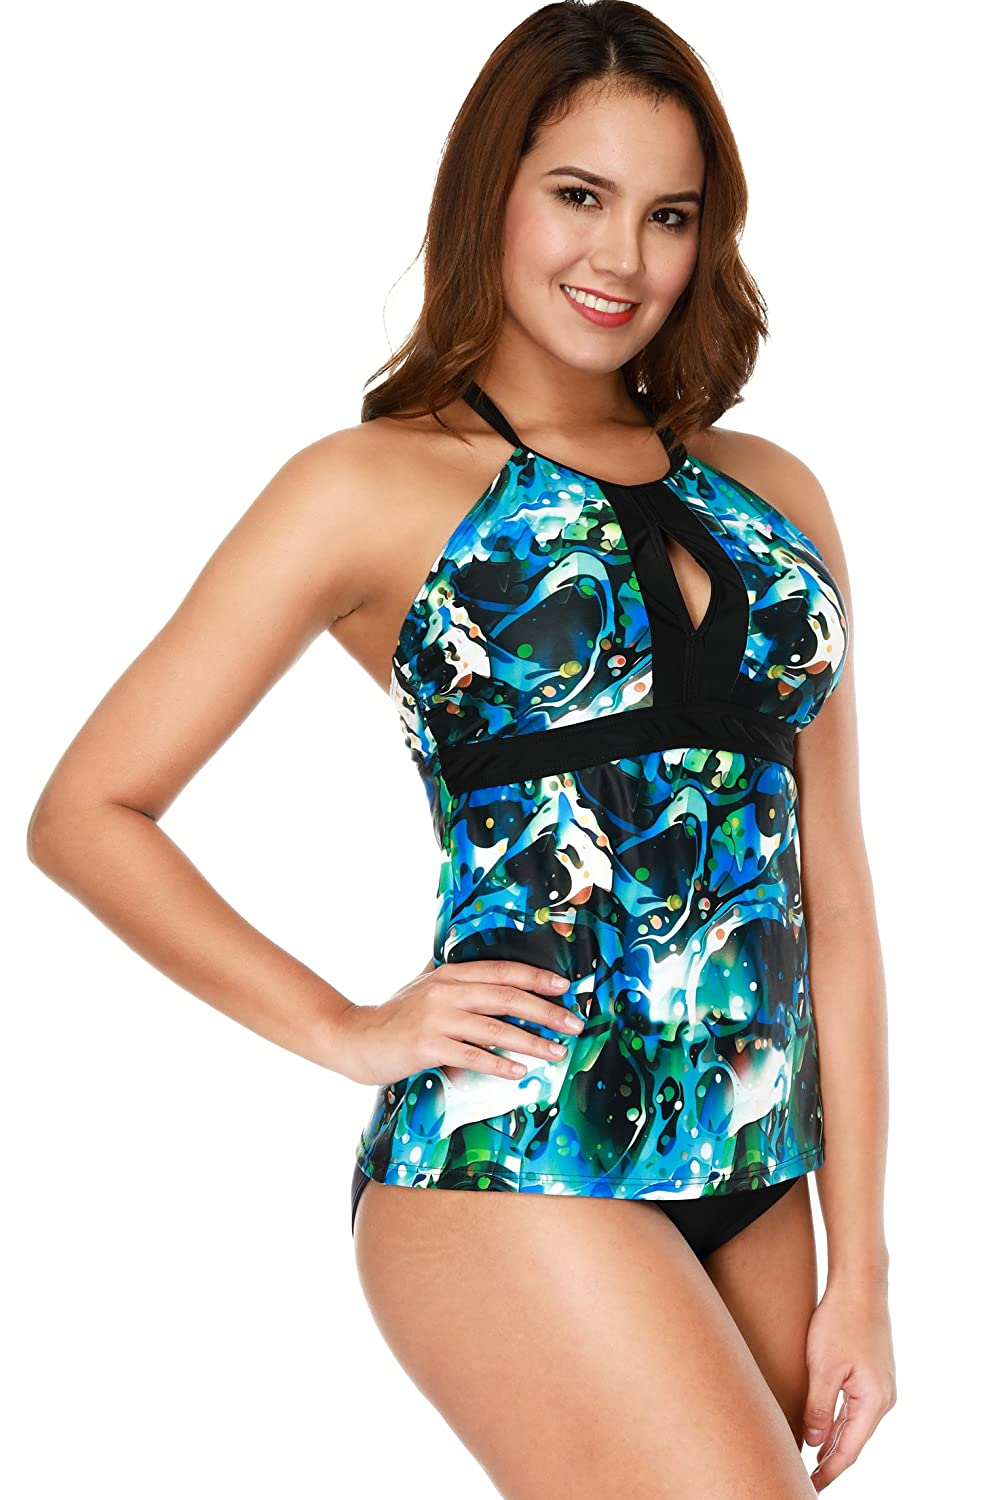 b4296c879f ATTRACO Women's Tankini Swimsuit with Brief Two Piece Swimwear Bathing Suit  at Amazon Women's Clothing store: